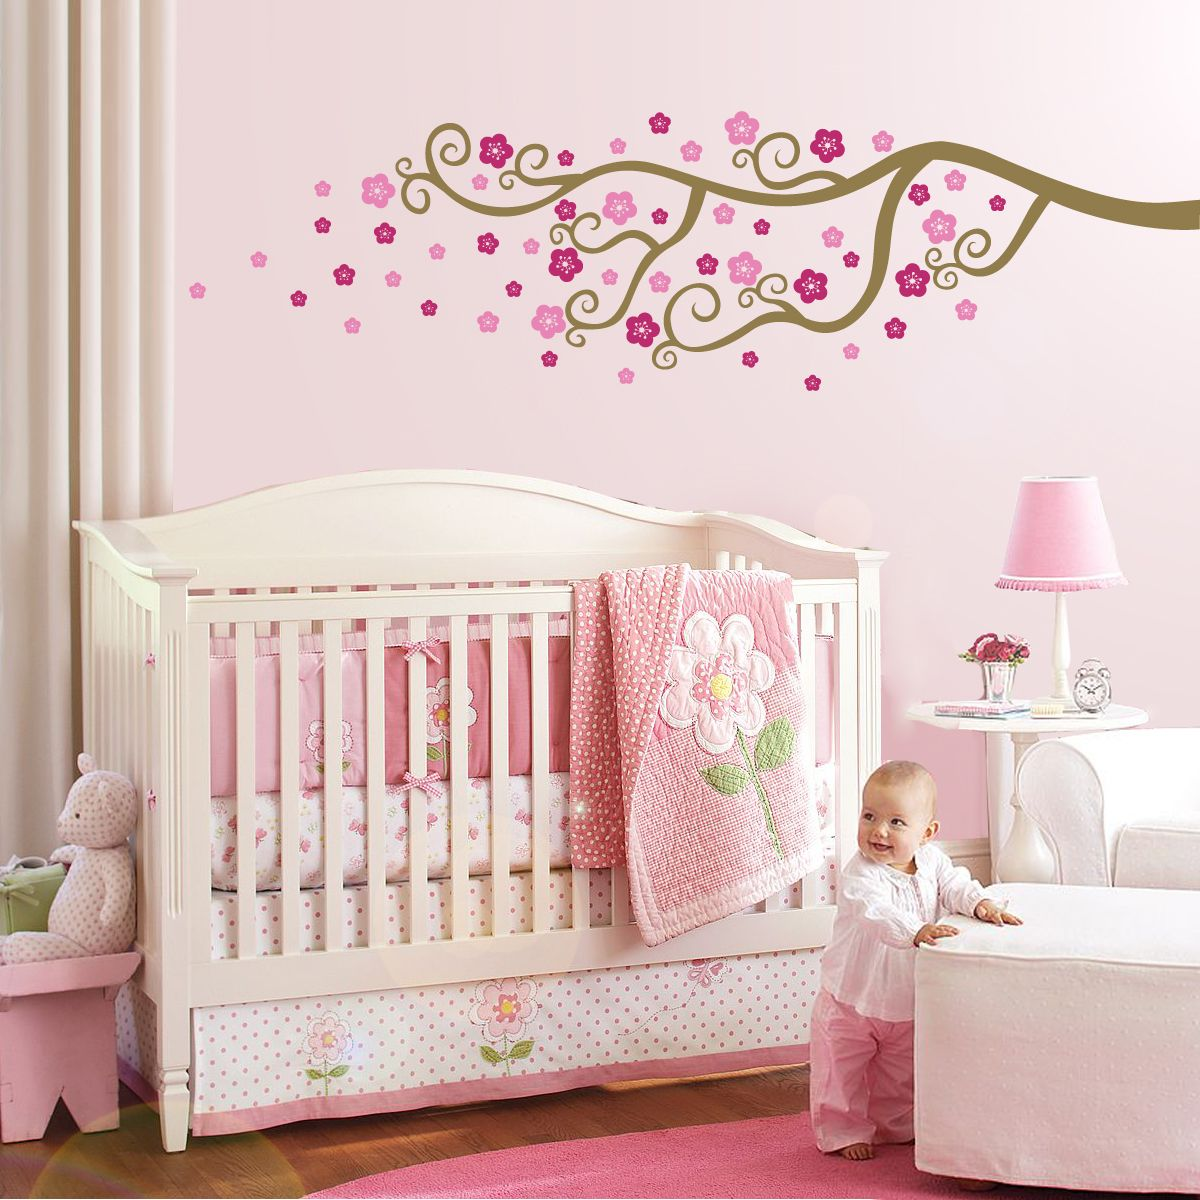 Pink bedroom painting ideas - Walls Painting Techniques For Walls Design With Tree Branch Picture The Best Way Of Painting Techniques For Walls Sponge Painting Techniques For Walls